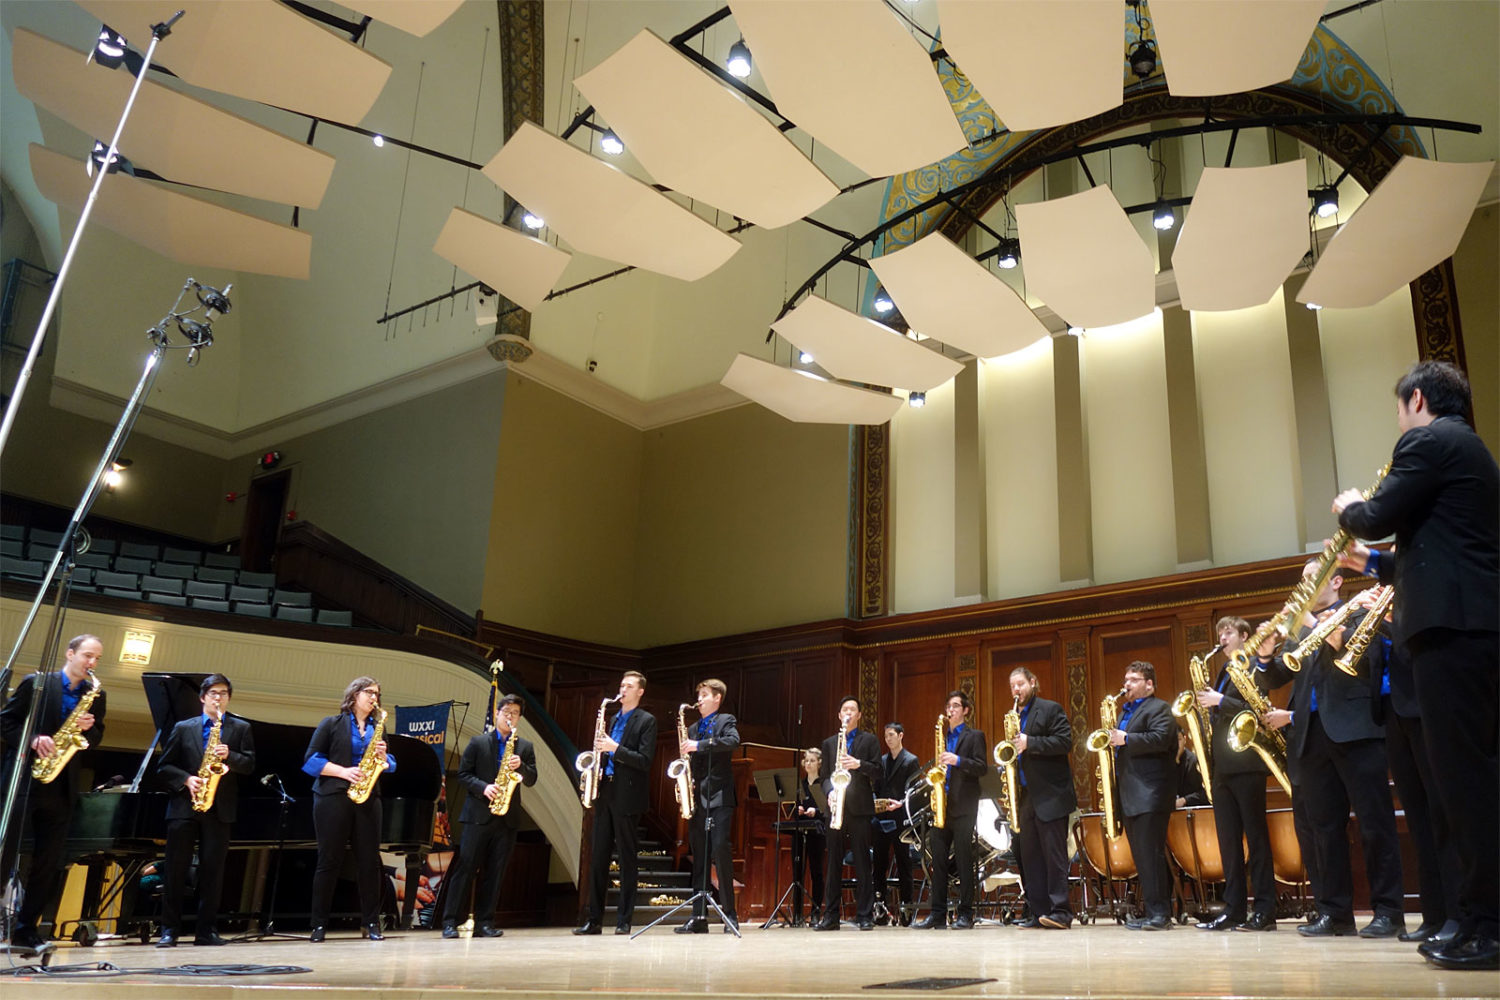 Eastman Saxophone Project performing at Hochstein School of Music